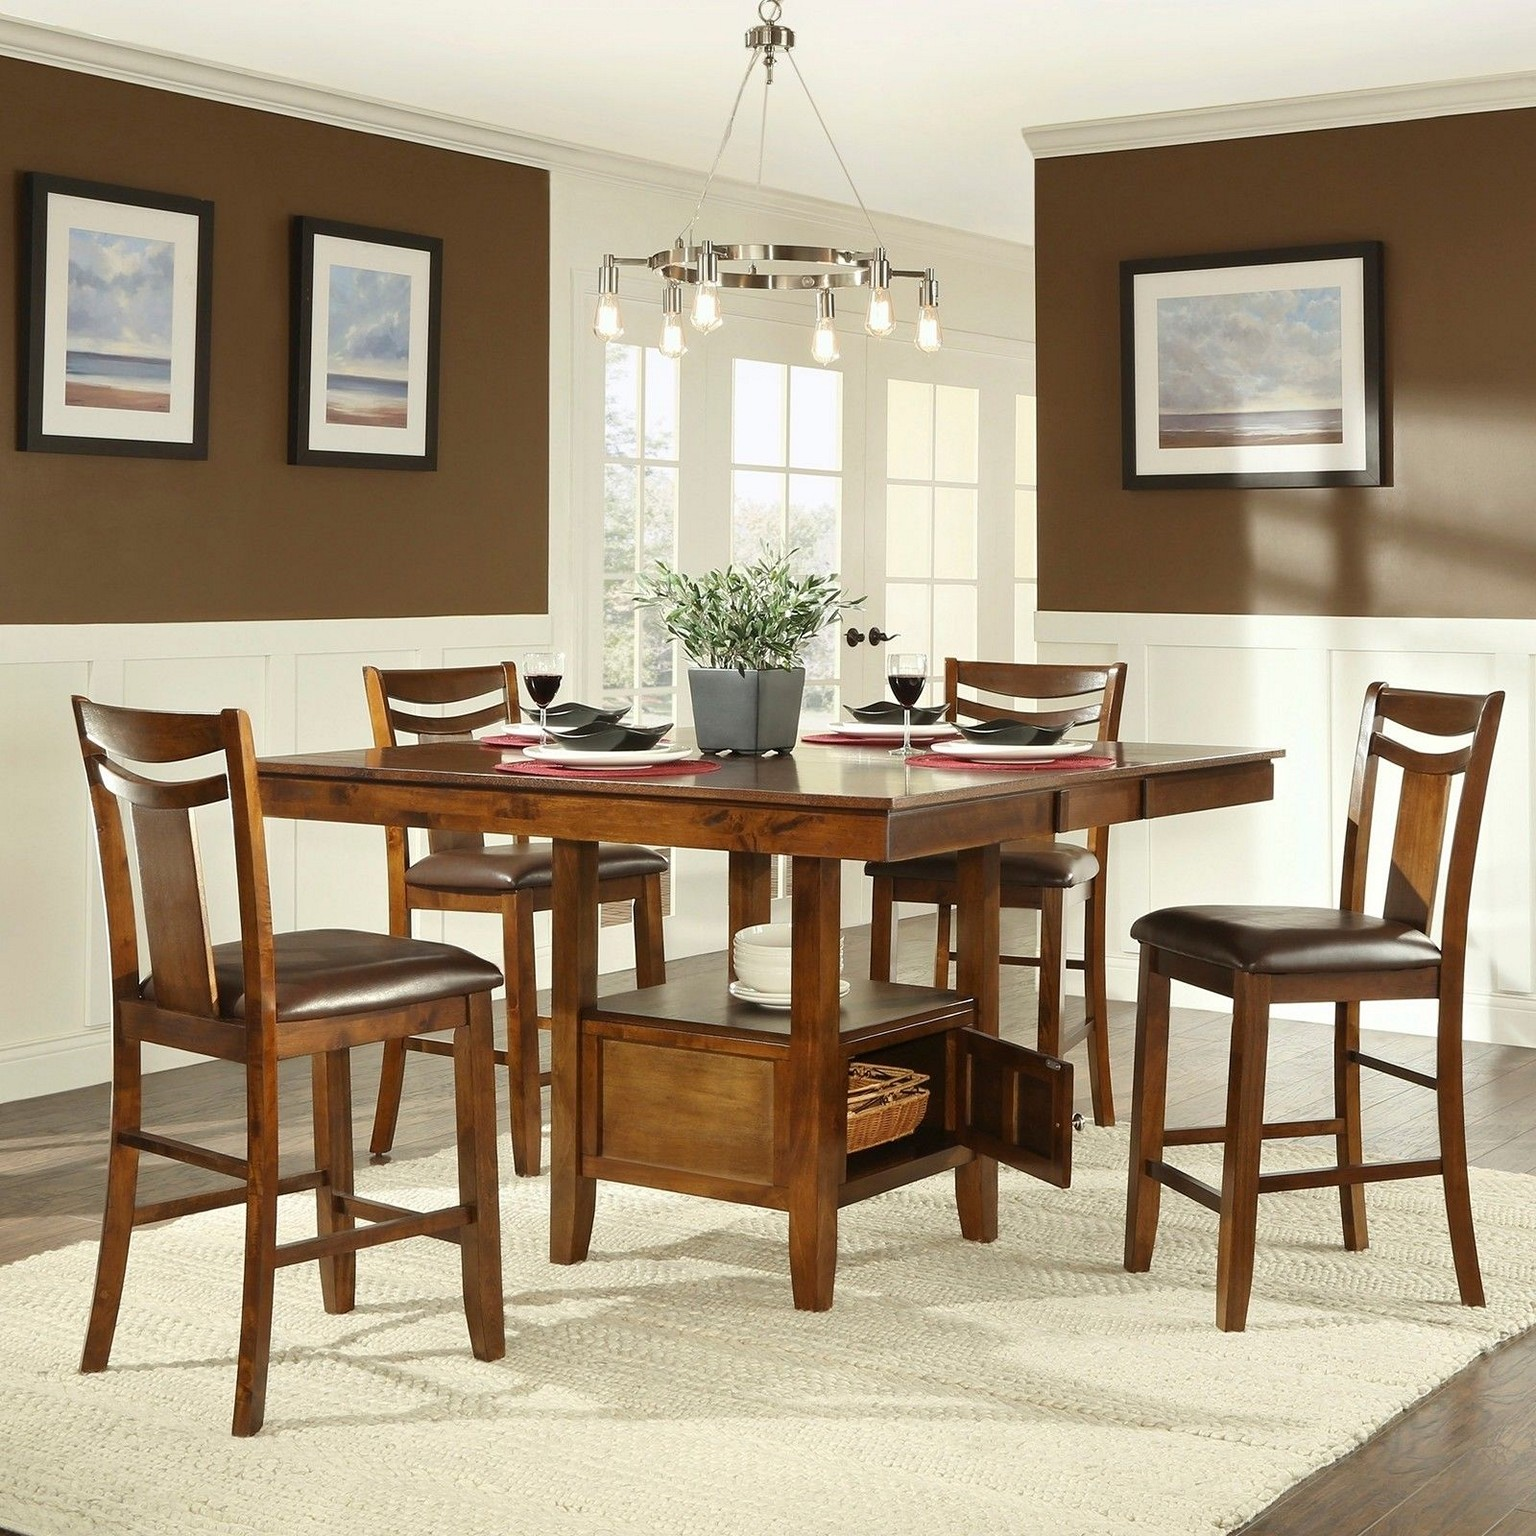 Small Dining Room photo - 6